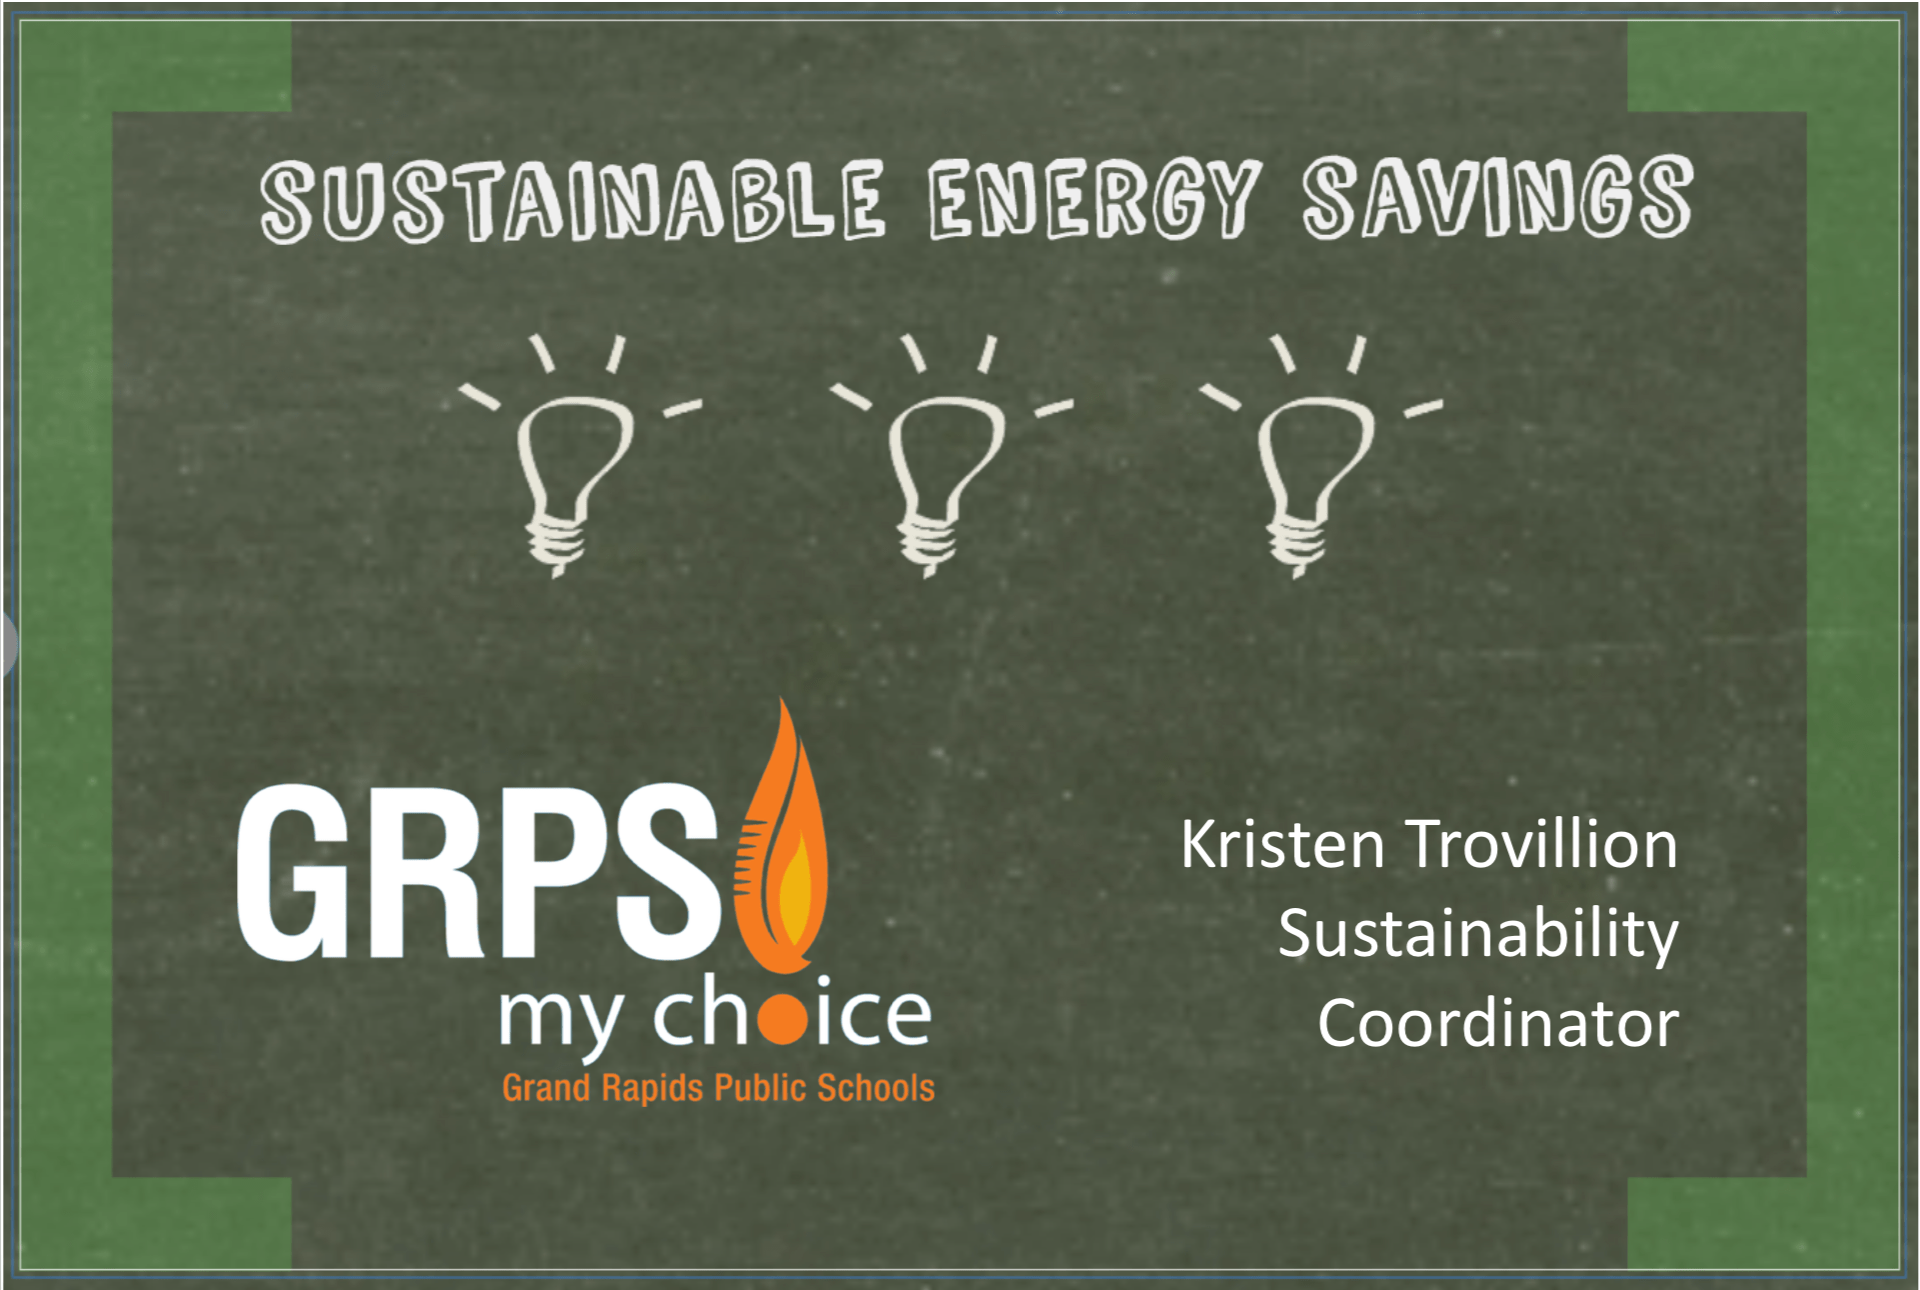 GRPS: Sustainable Energy Savings